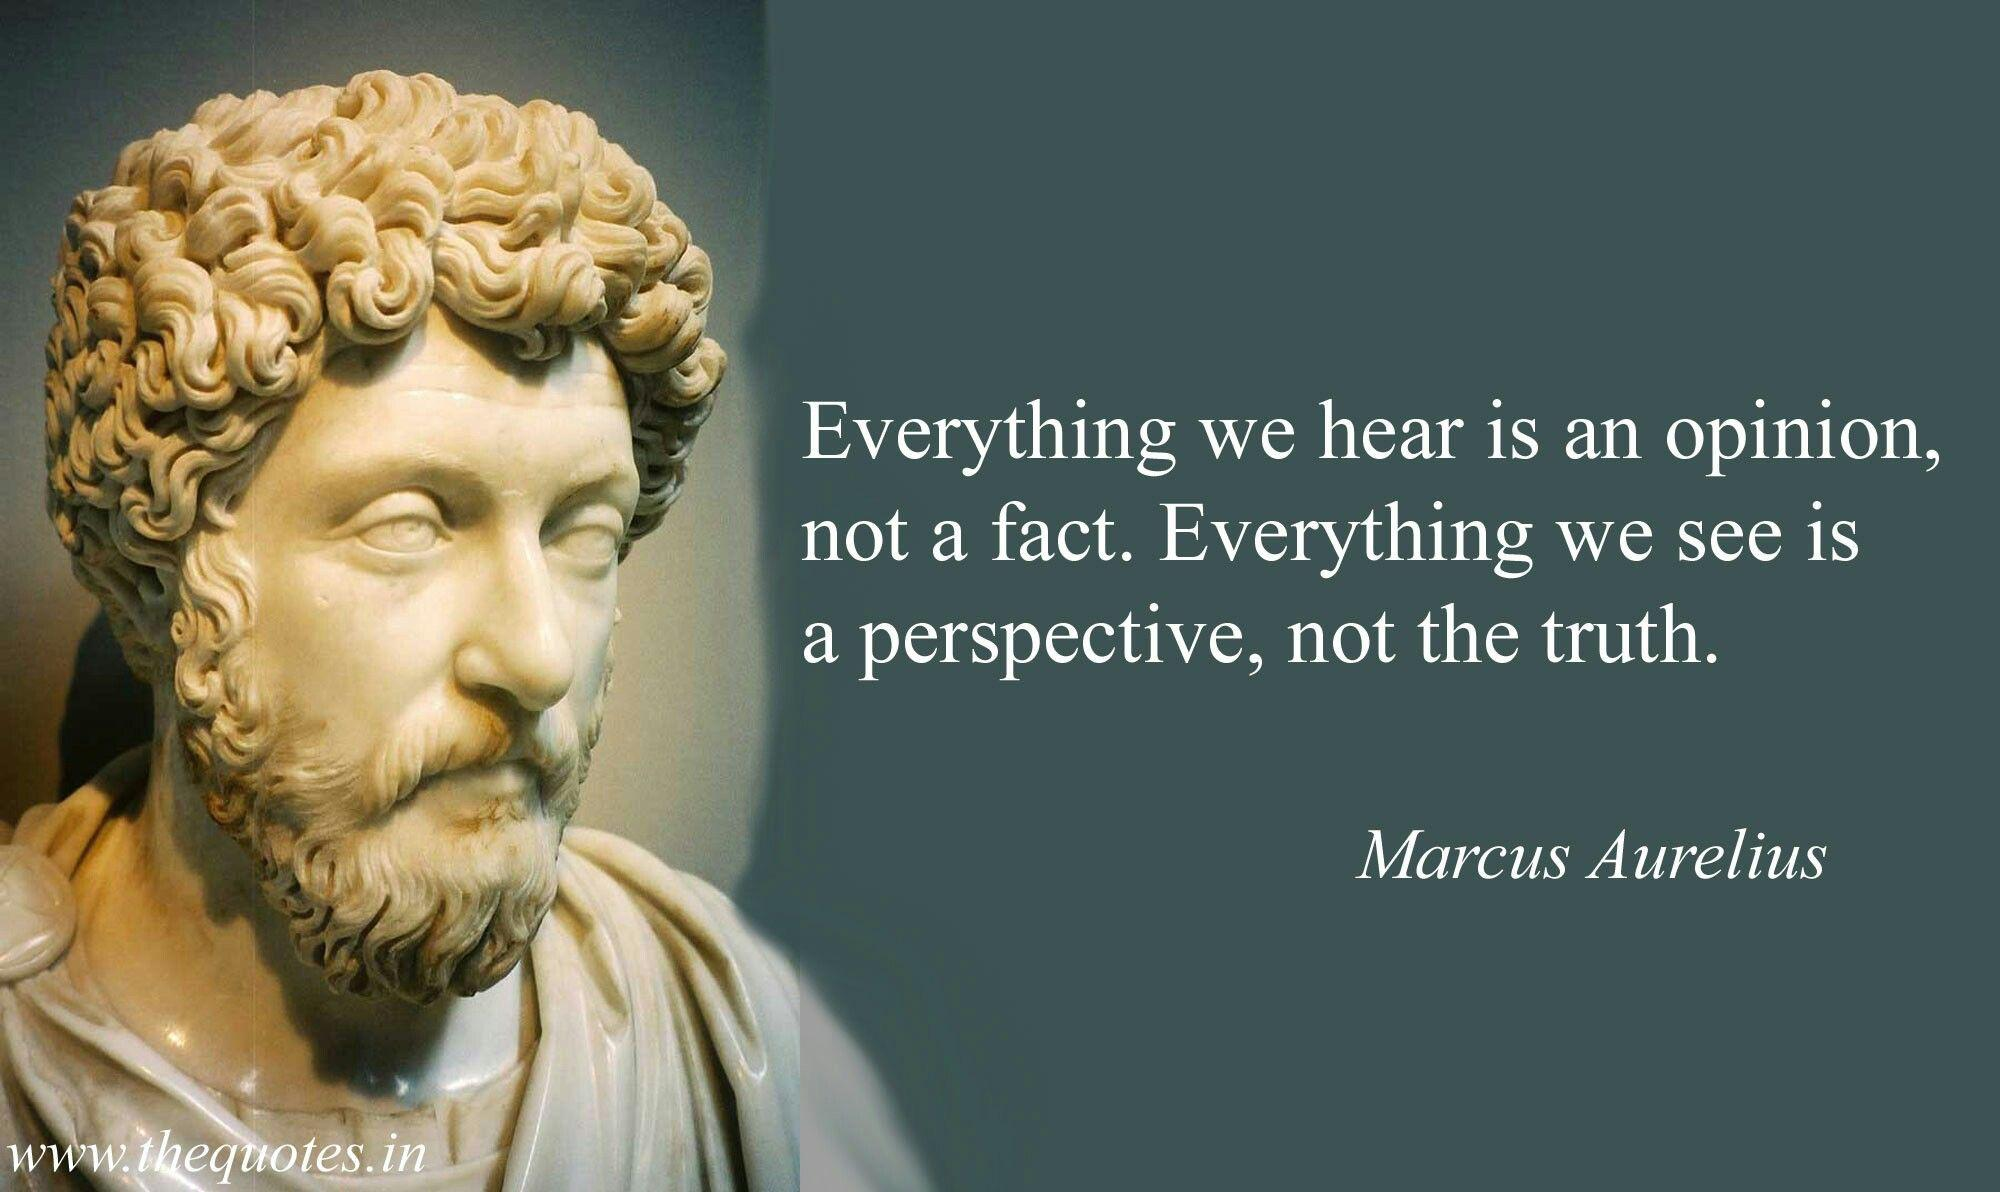 [Image] Everything we hear is an opinion, not a fact. Everything we see is a perspective, not the truth. – Marcus Aurelius